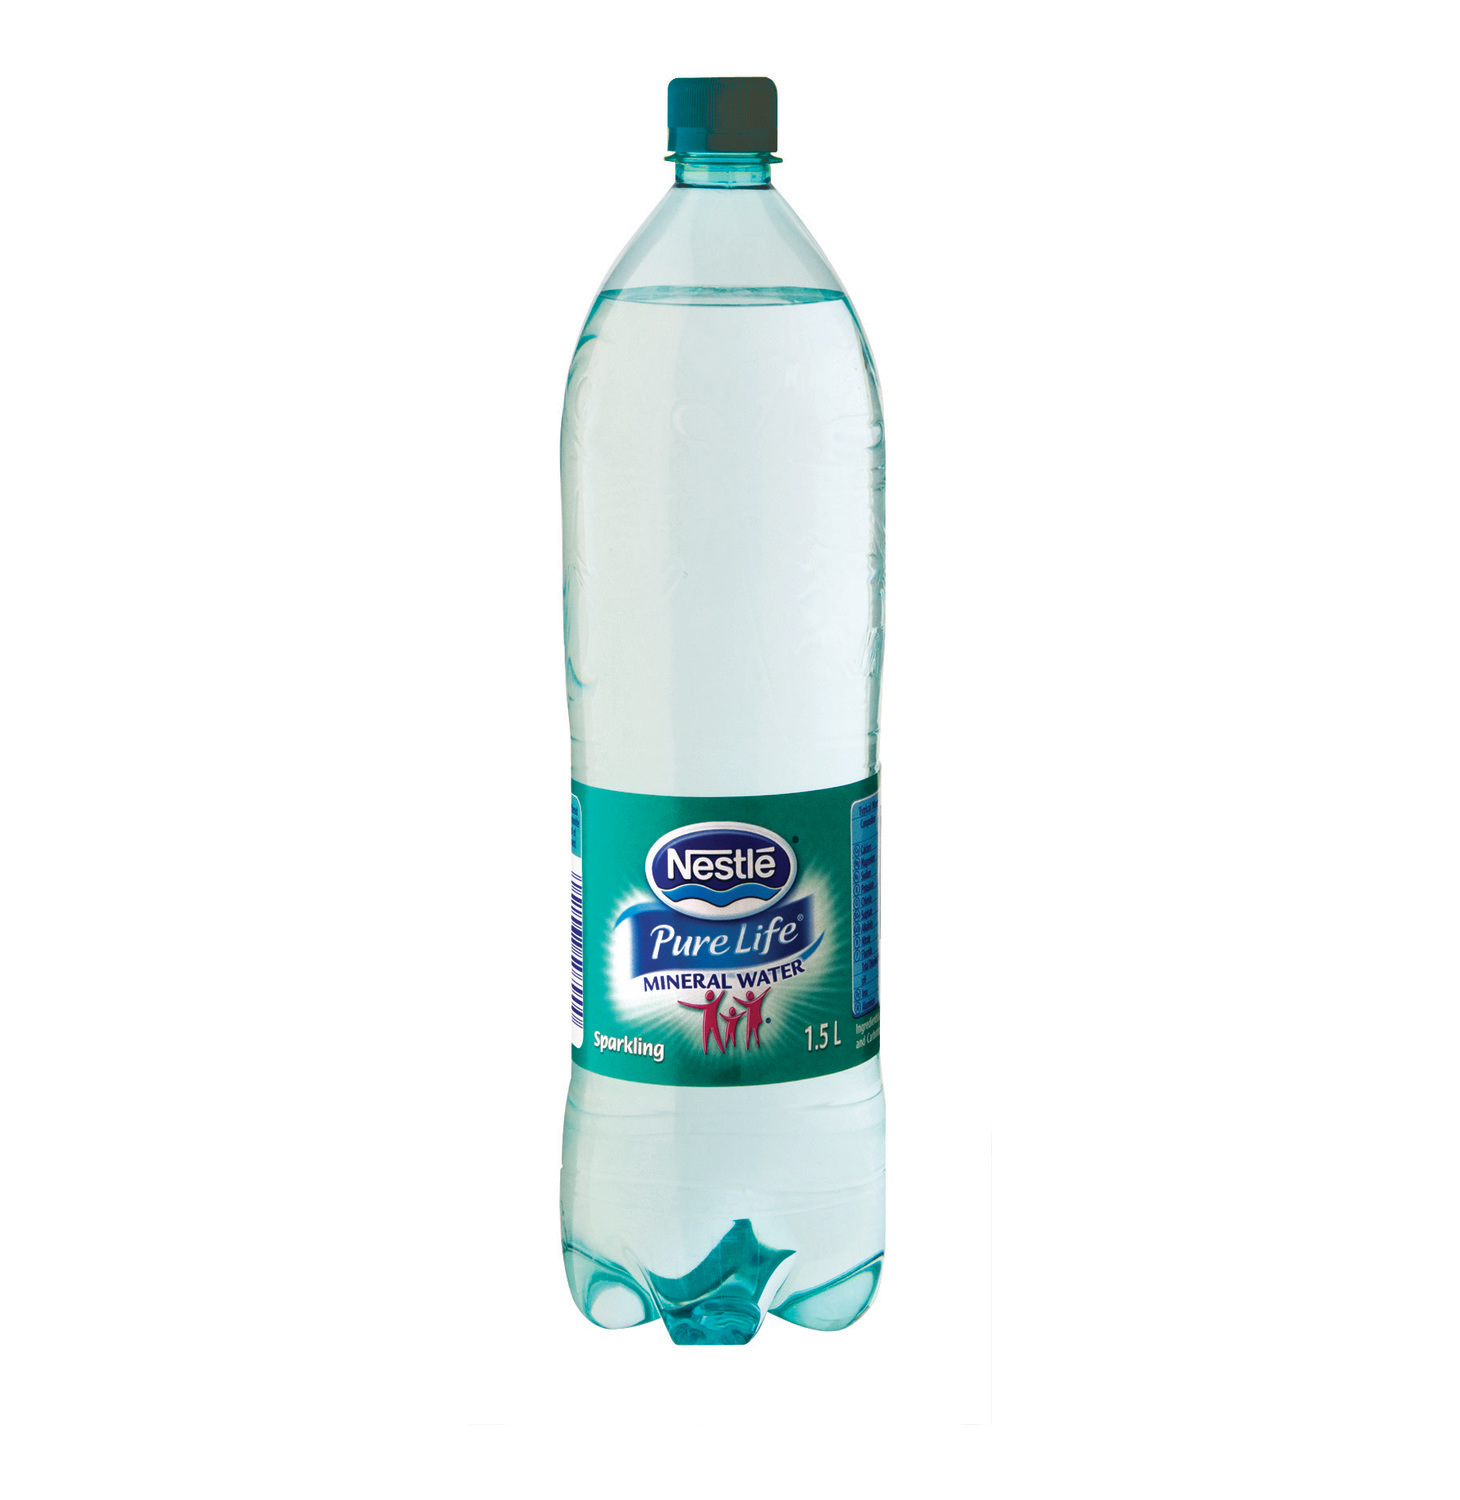 NESTLE Pure Life Mineral Water Sparkling (1 x 1.5L)